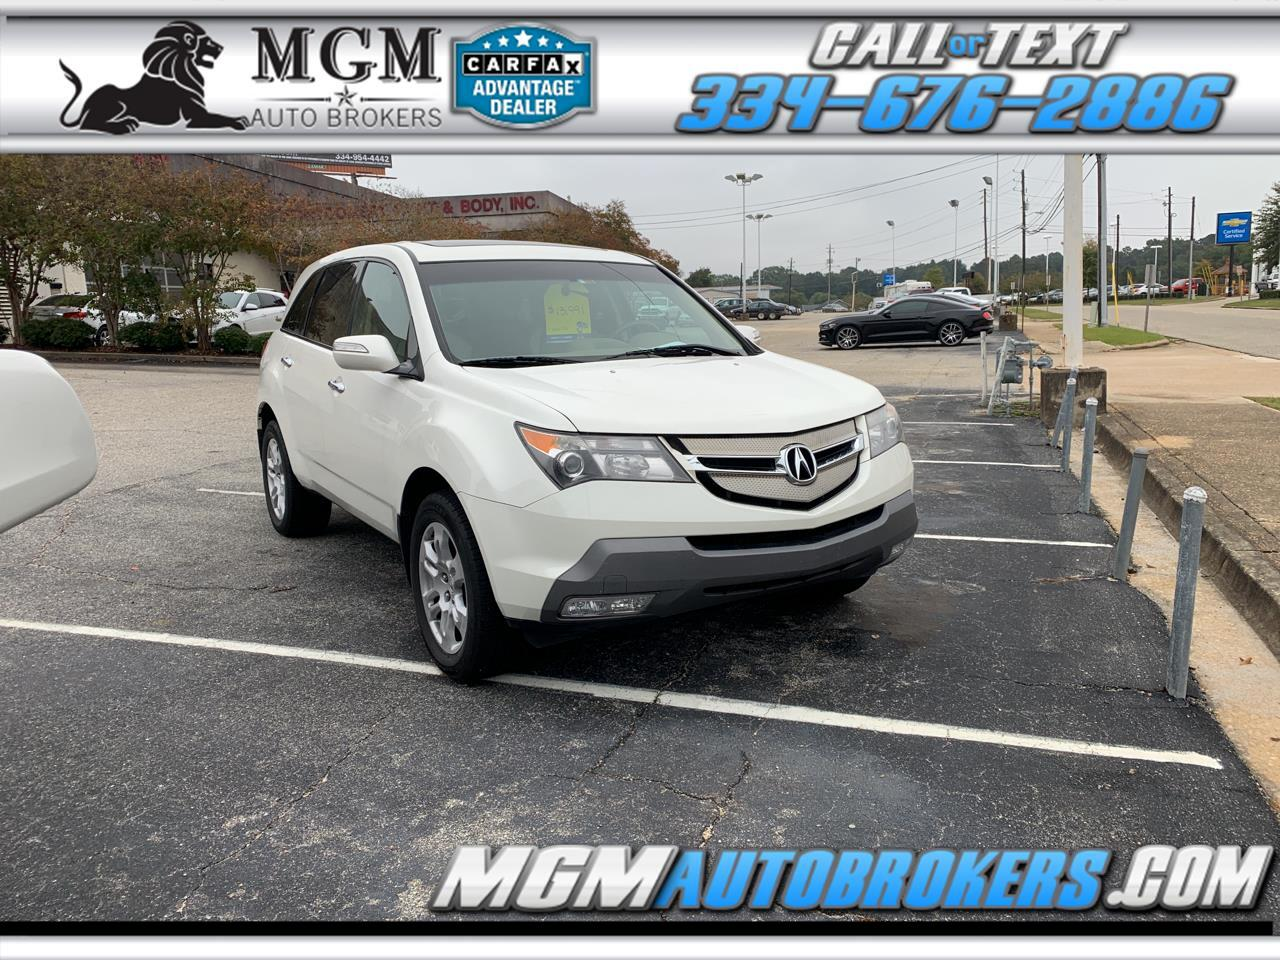 2007 Acura MDX AWD 4dr Technology/Entertainment Pkg